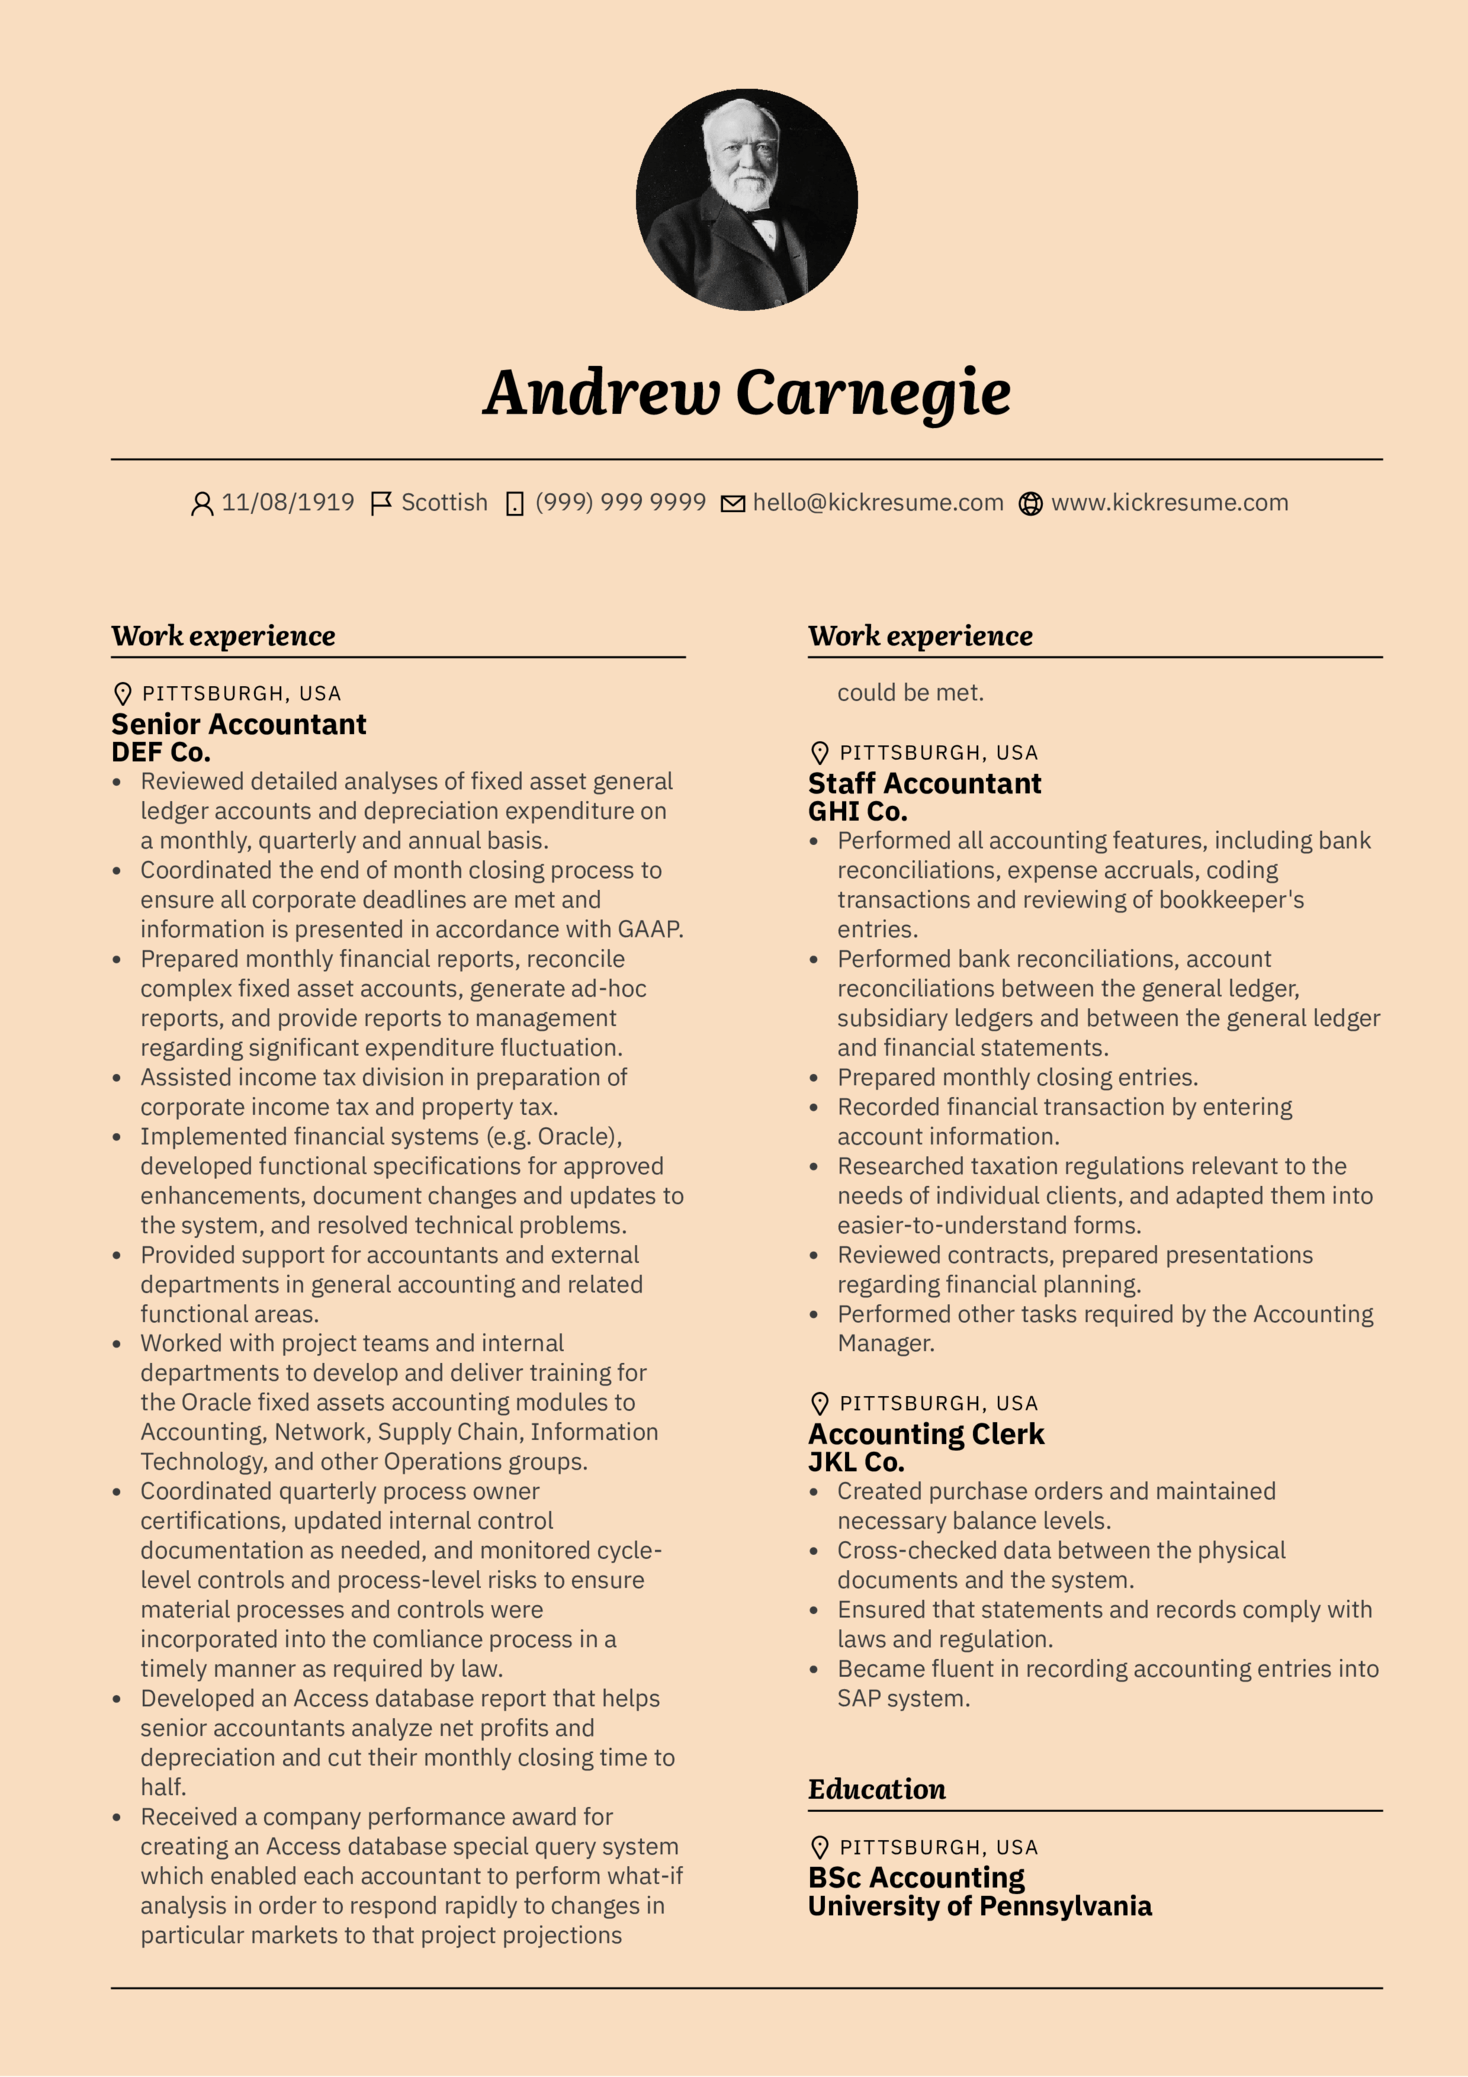 Senior Accountant Resume Sample | Resume samples | Career help center